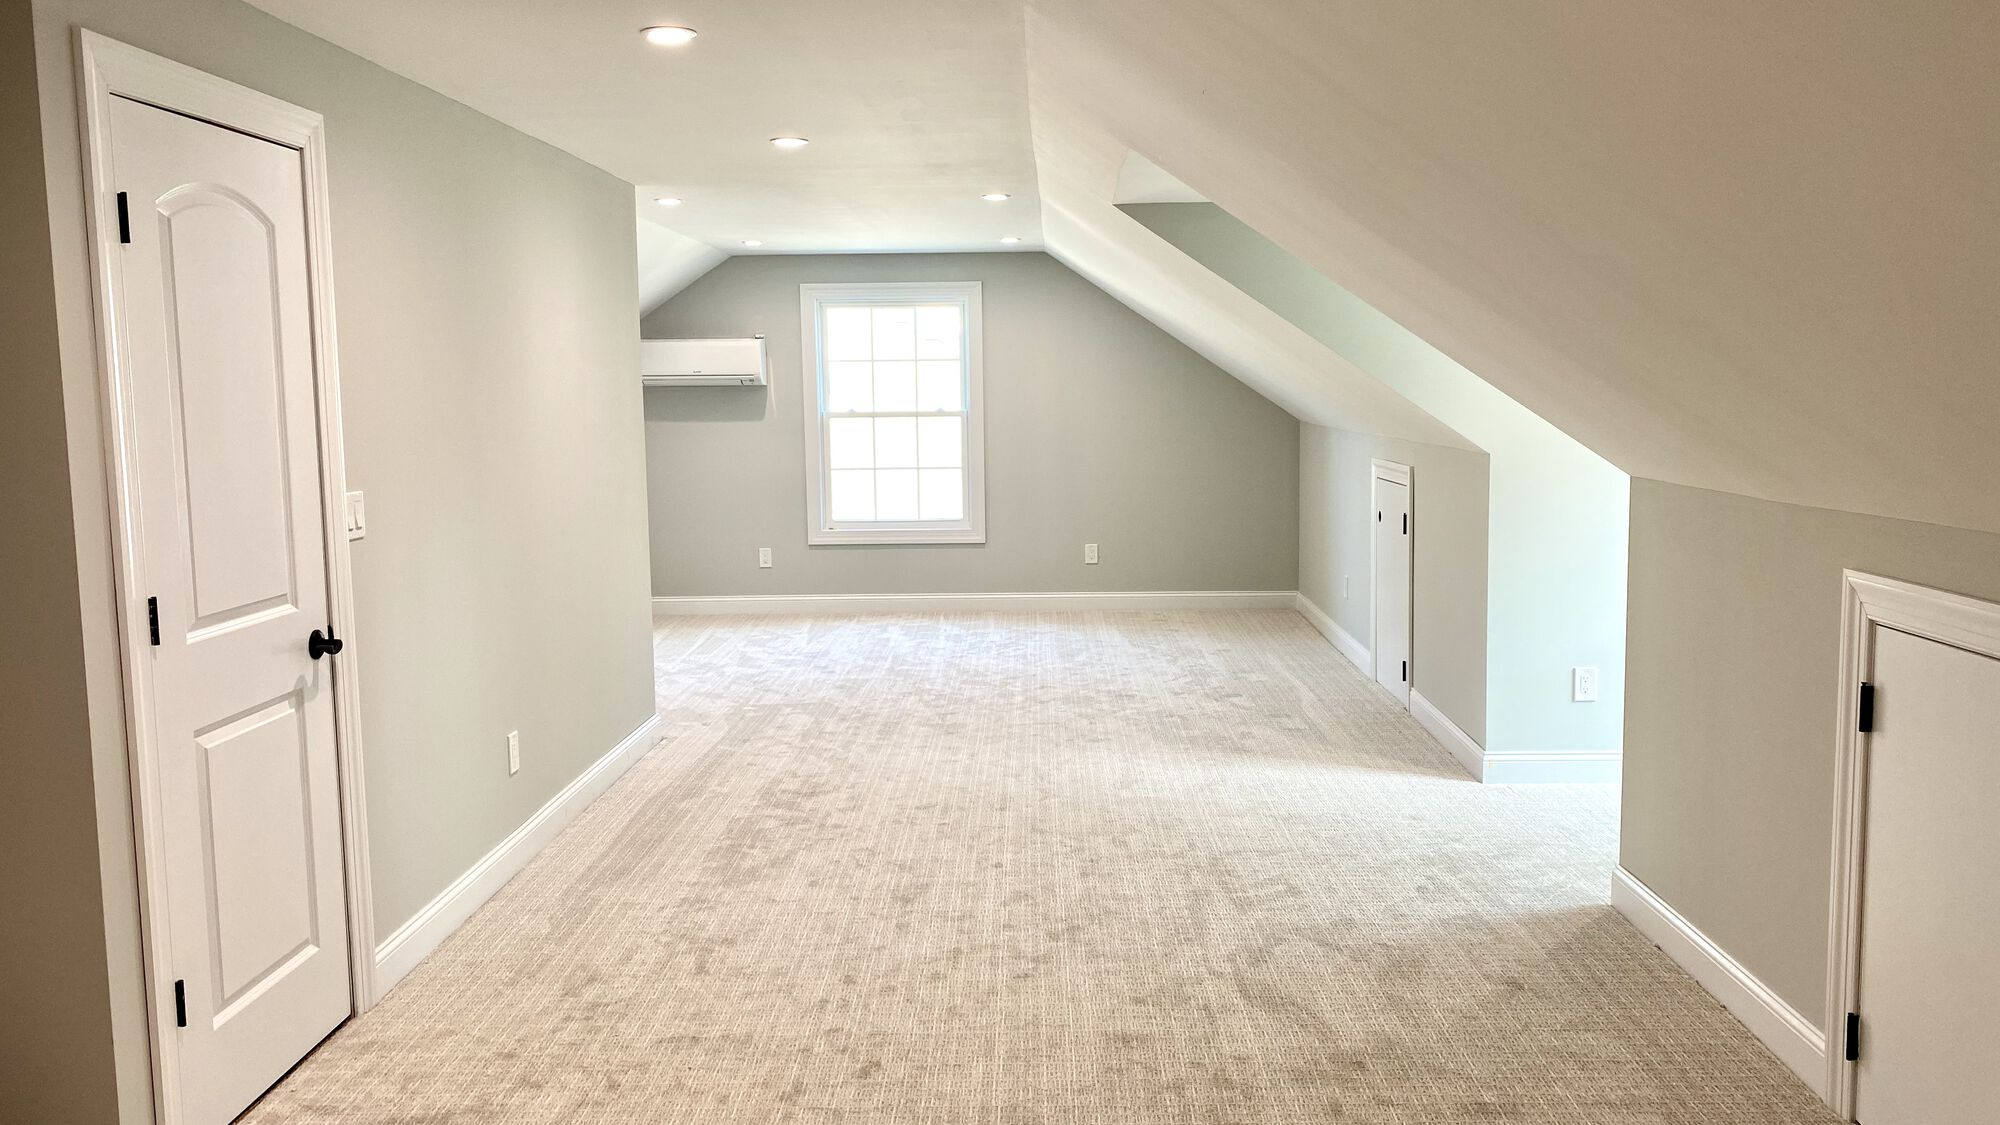 Attic Finished with Dormers, HVAC, Electrical Wiring, Office Space and Storage in Westfield, Union County NJ (1)